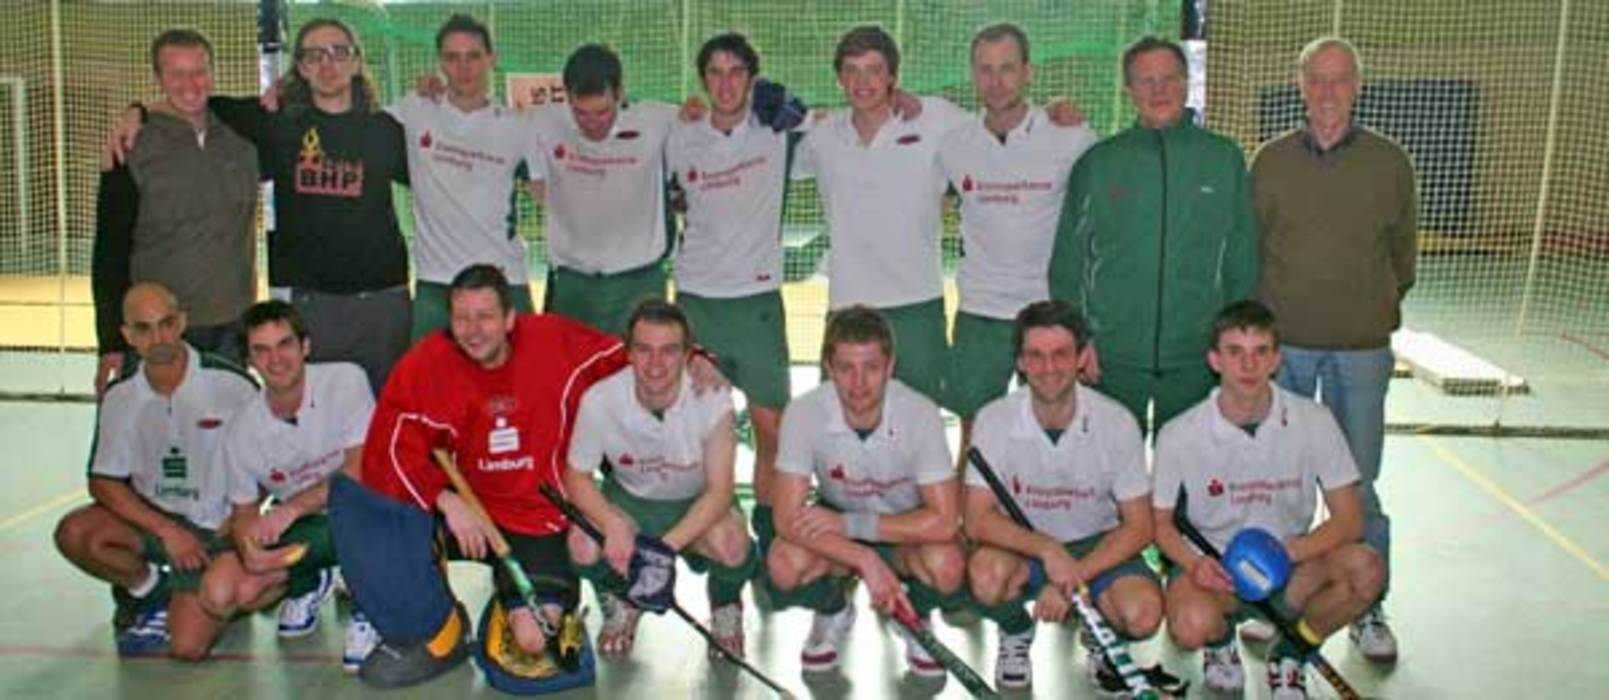 2008 Limburger HC 2 Bundesliga